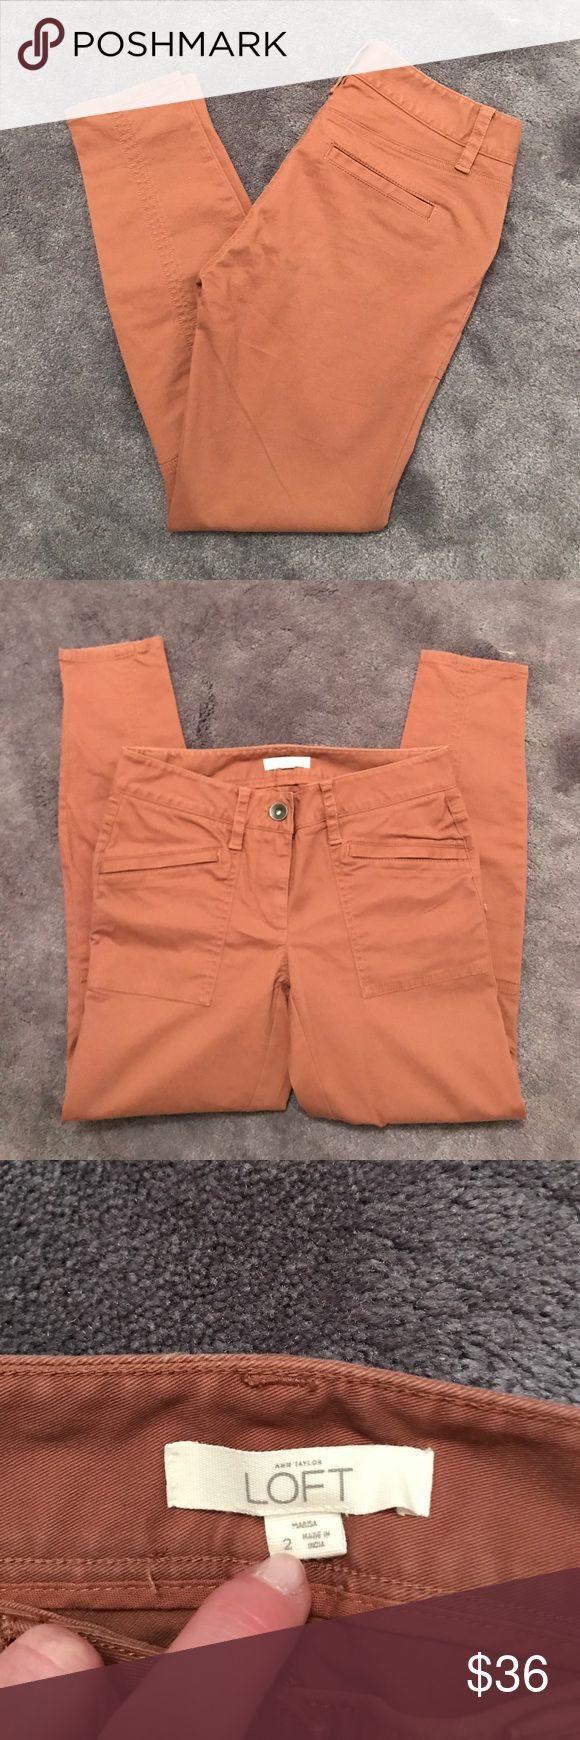 """New Loft Brown Skinnies Brand new without tags, brown skinny jeans! These jeans are from Loft and a size 2. 97% cotton. 27"""" inseam. The front two pockets are zipper closed. The back pockets are fake and sewn shut. LOFT Pants Skinny"""